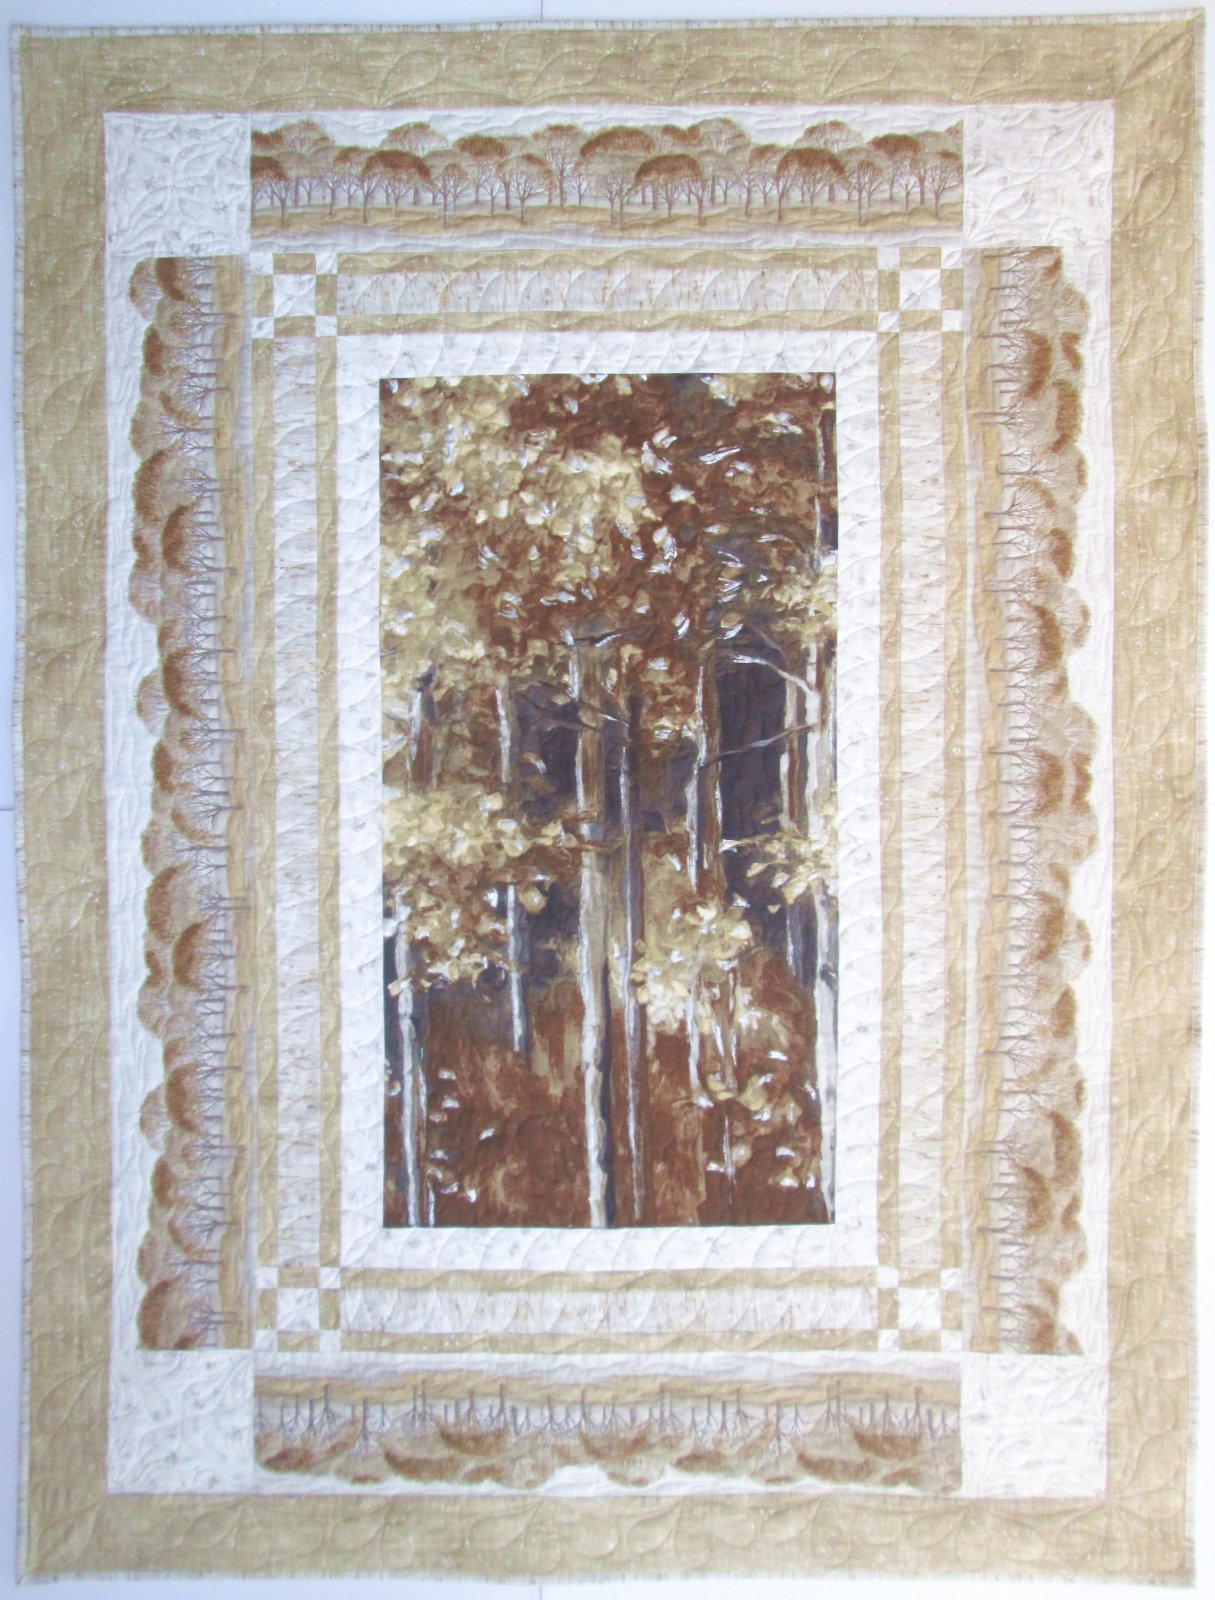 Woodland Sanctuary Quilt Sample 55.5 x 74.5 featuring Sound of the Woods